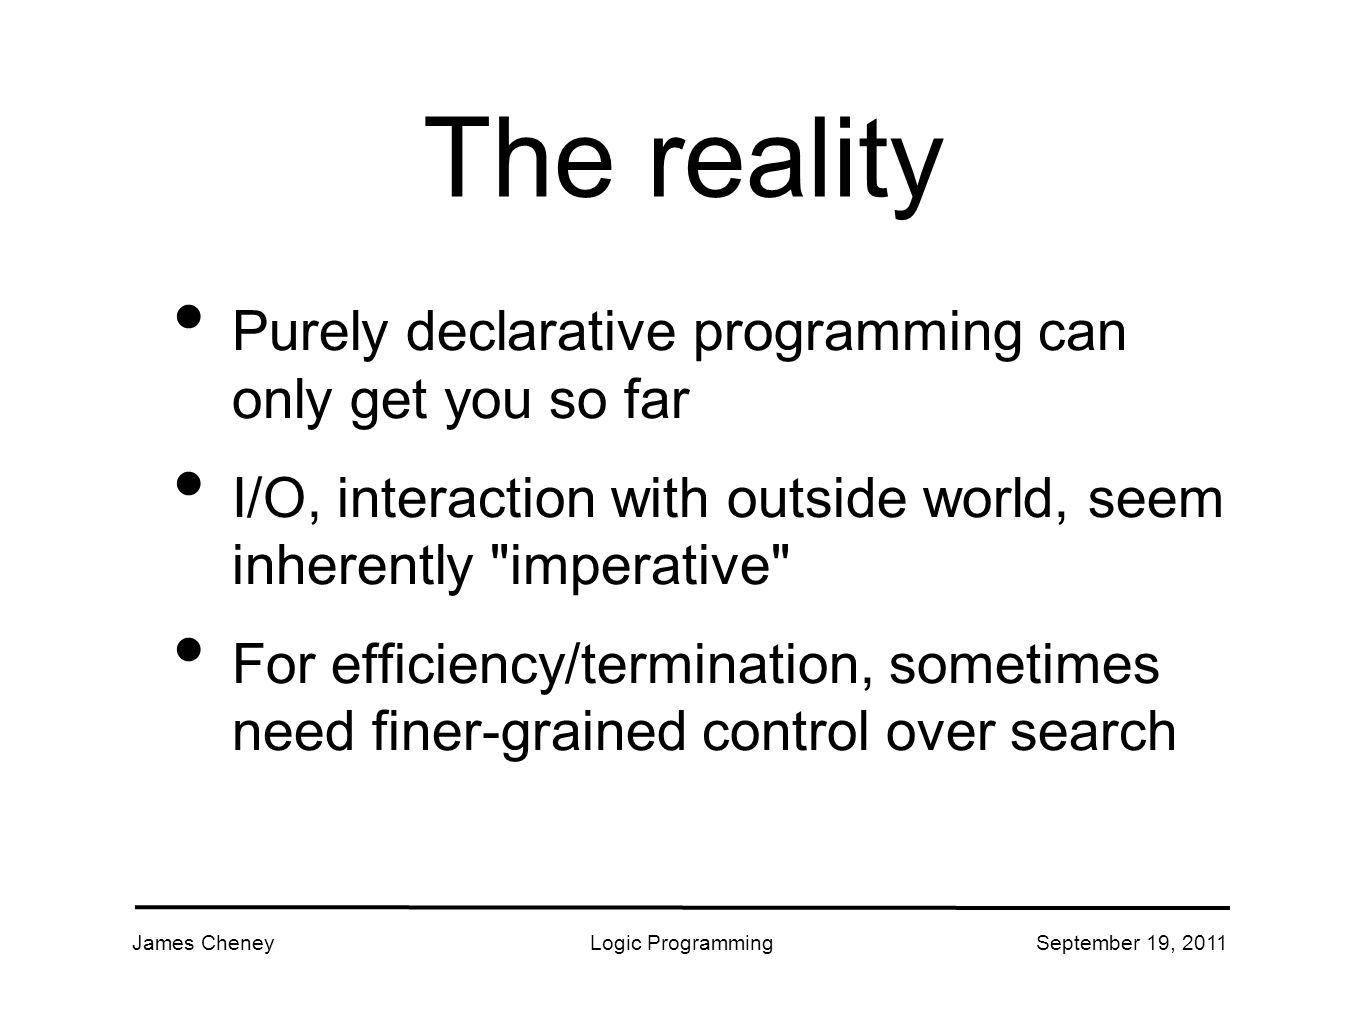 James CheneyLogic ProgrammingSeptember 19, 2011 The reality Purely declarative programming can only get you so far I/O, interaction with outside world, seem inherently imperative For efficiency/termination, sometimes need finer-grained control over search